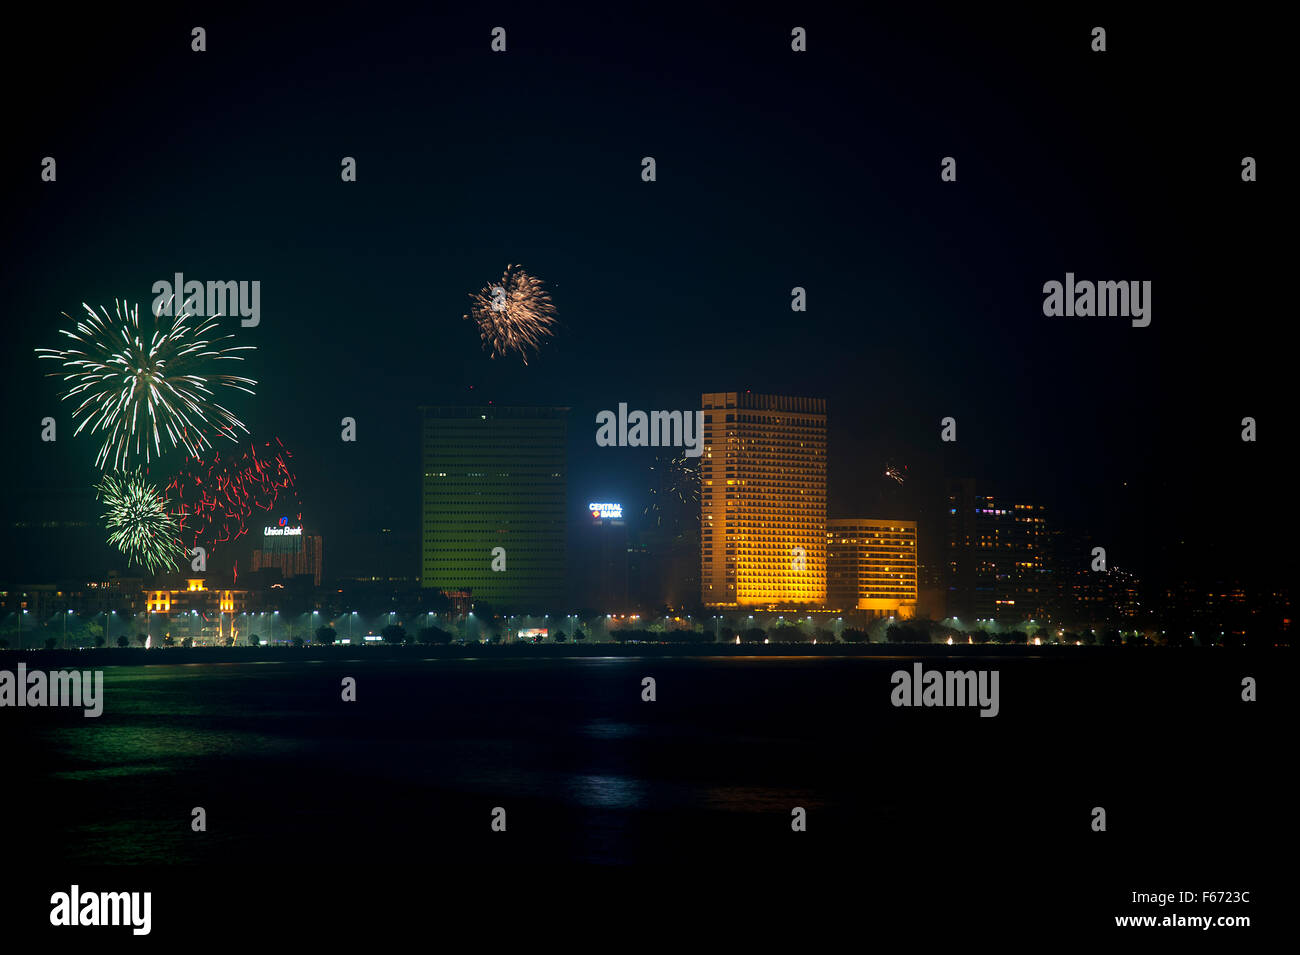 The image of Fire works at Marine drive was taken in Mumbai, India - Stock Image